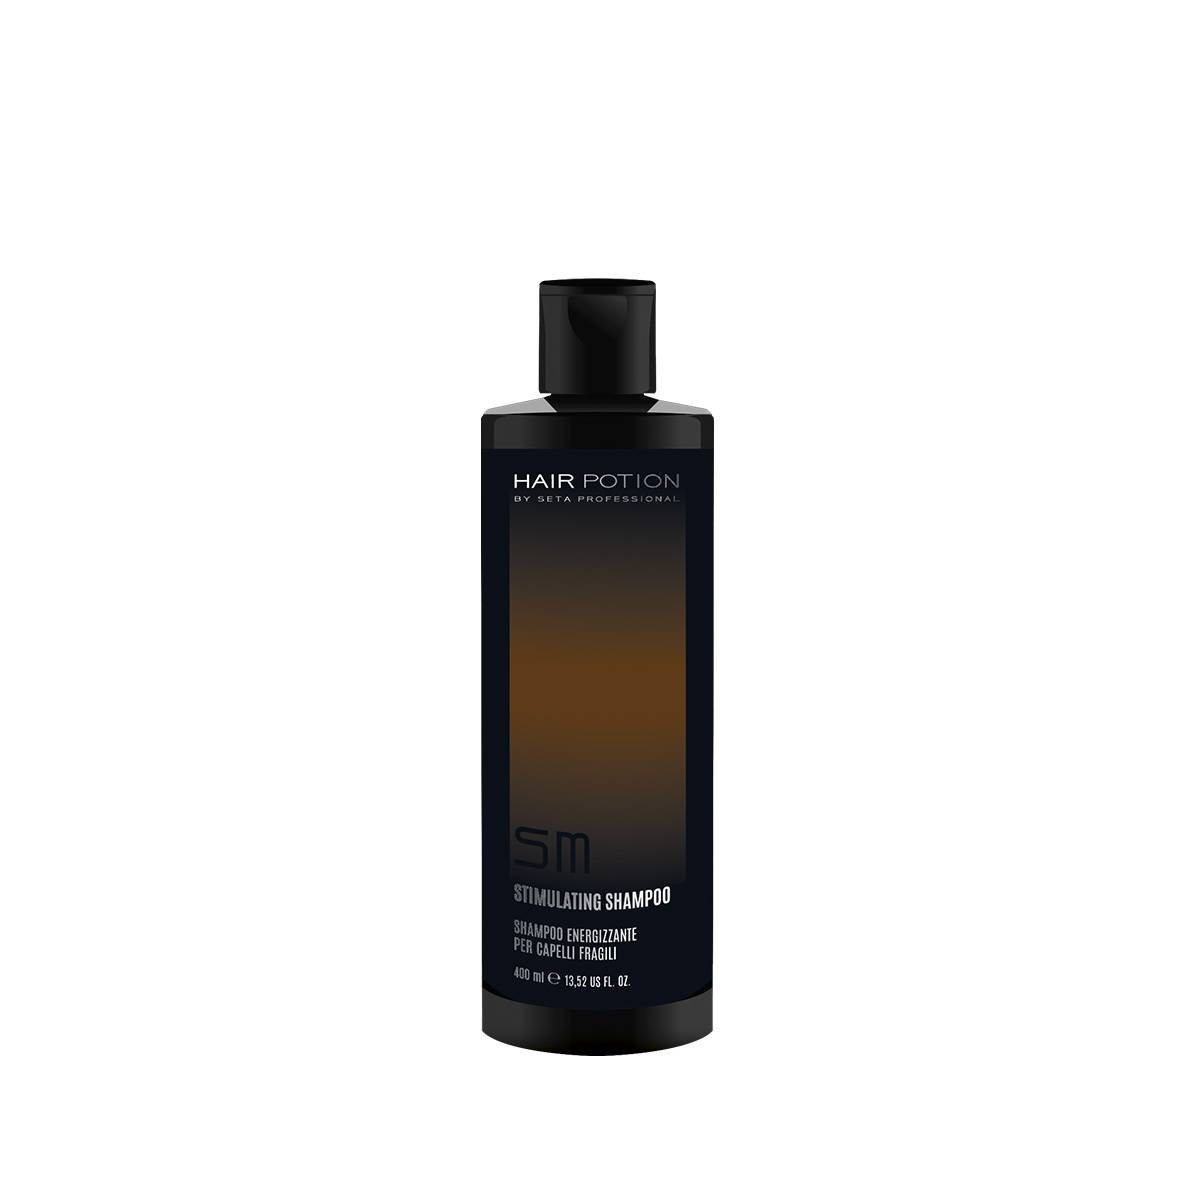 Hair Potion Pro Stimulating Shampoo 400ml